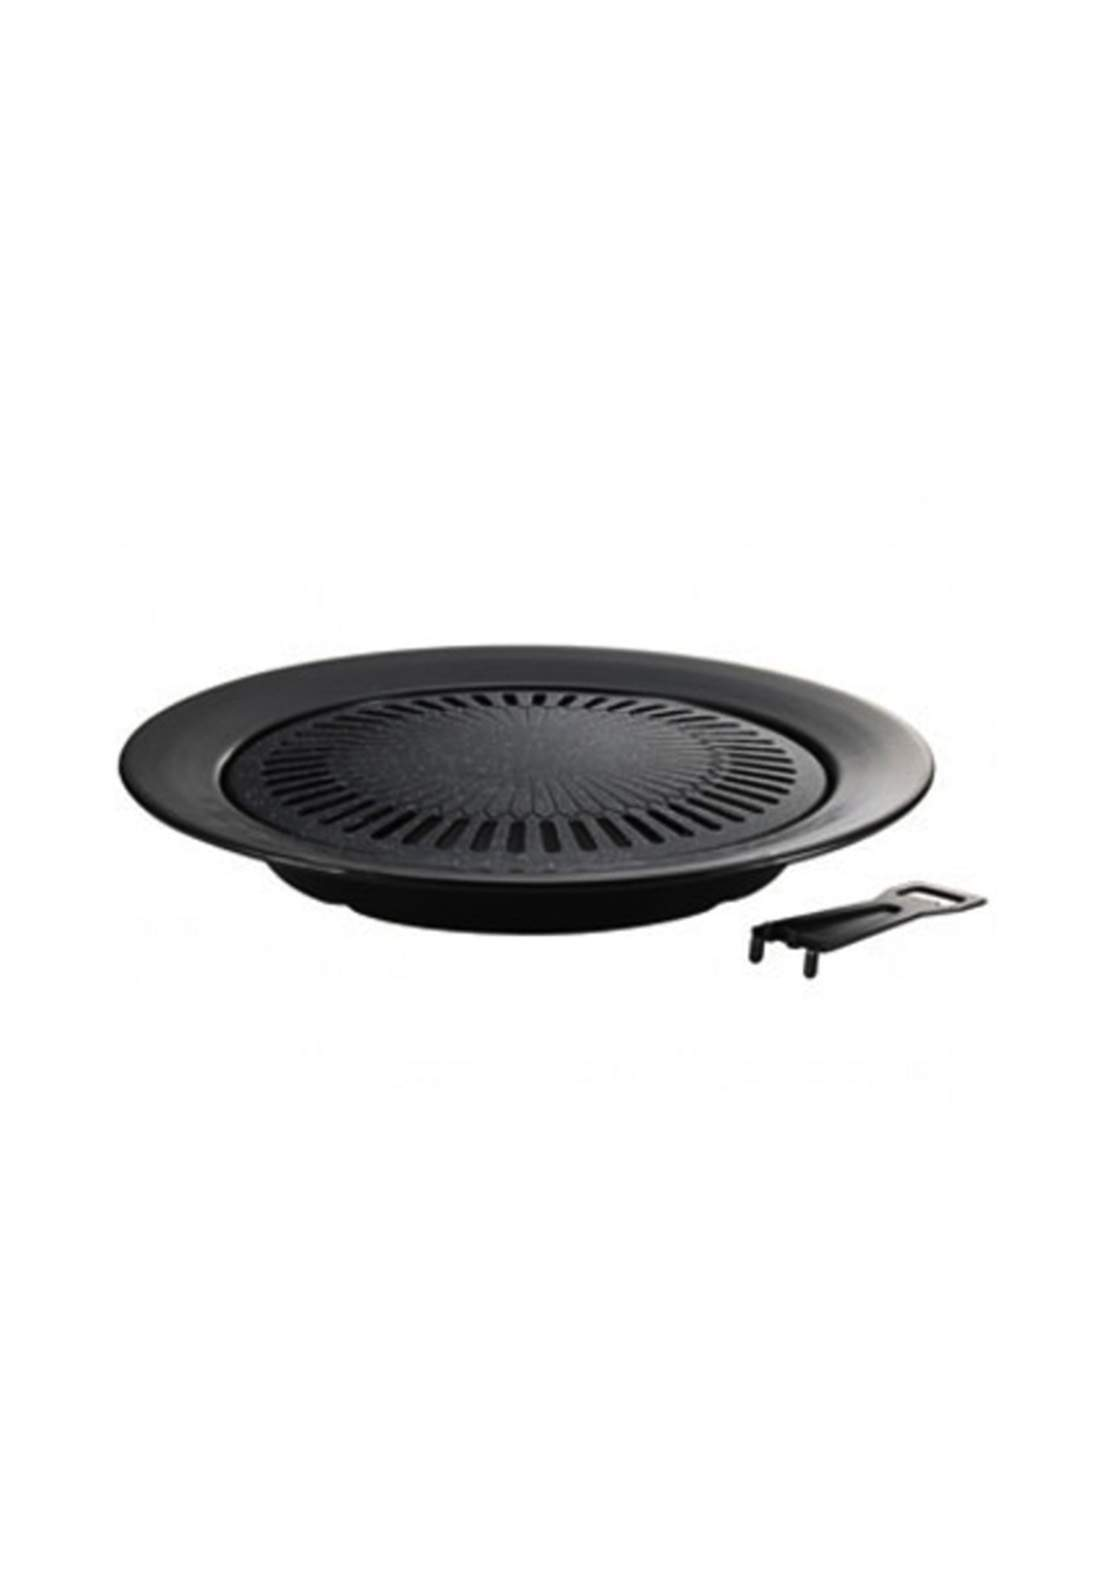 Pearl Metal H-4059 Strong Marble 4-Layer Round Grilled Meat Grill صينية شواء